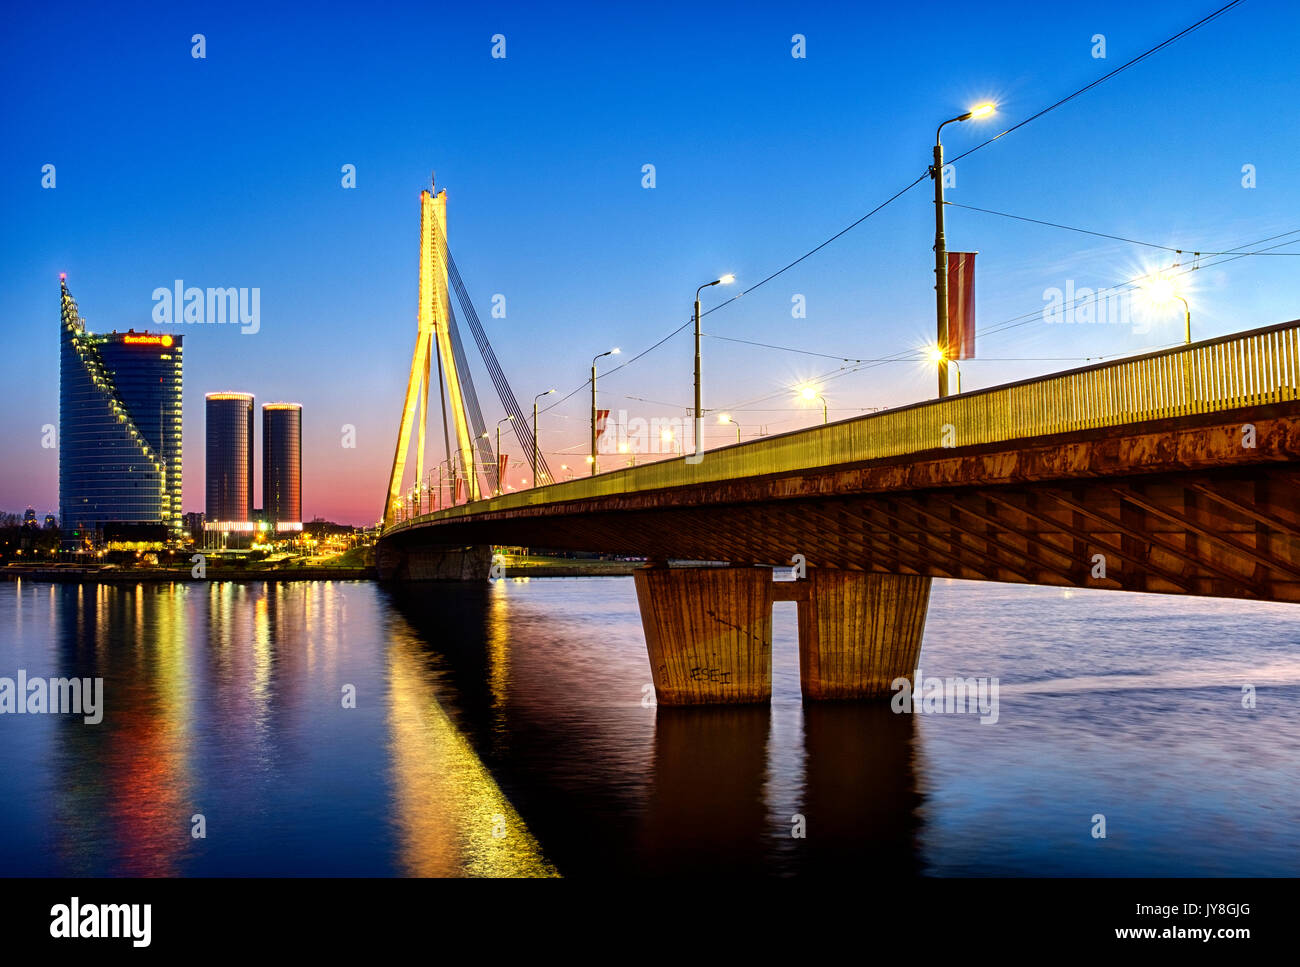 Vansu Bridge, Riga, Latvia - Stock Image